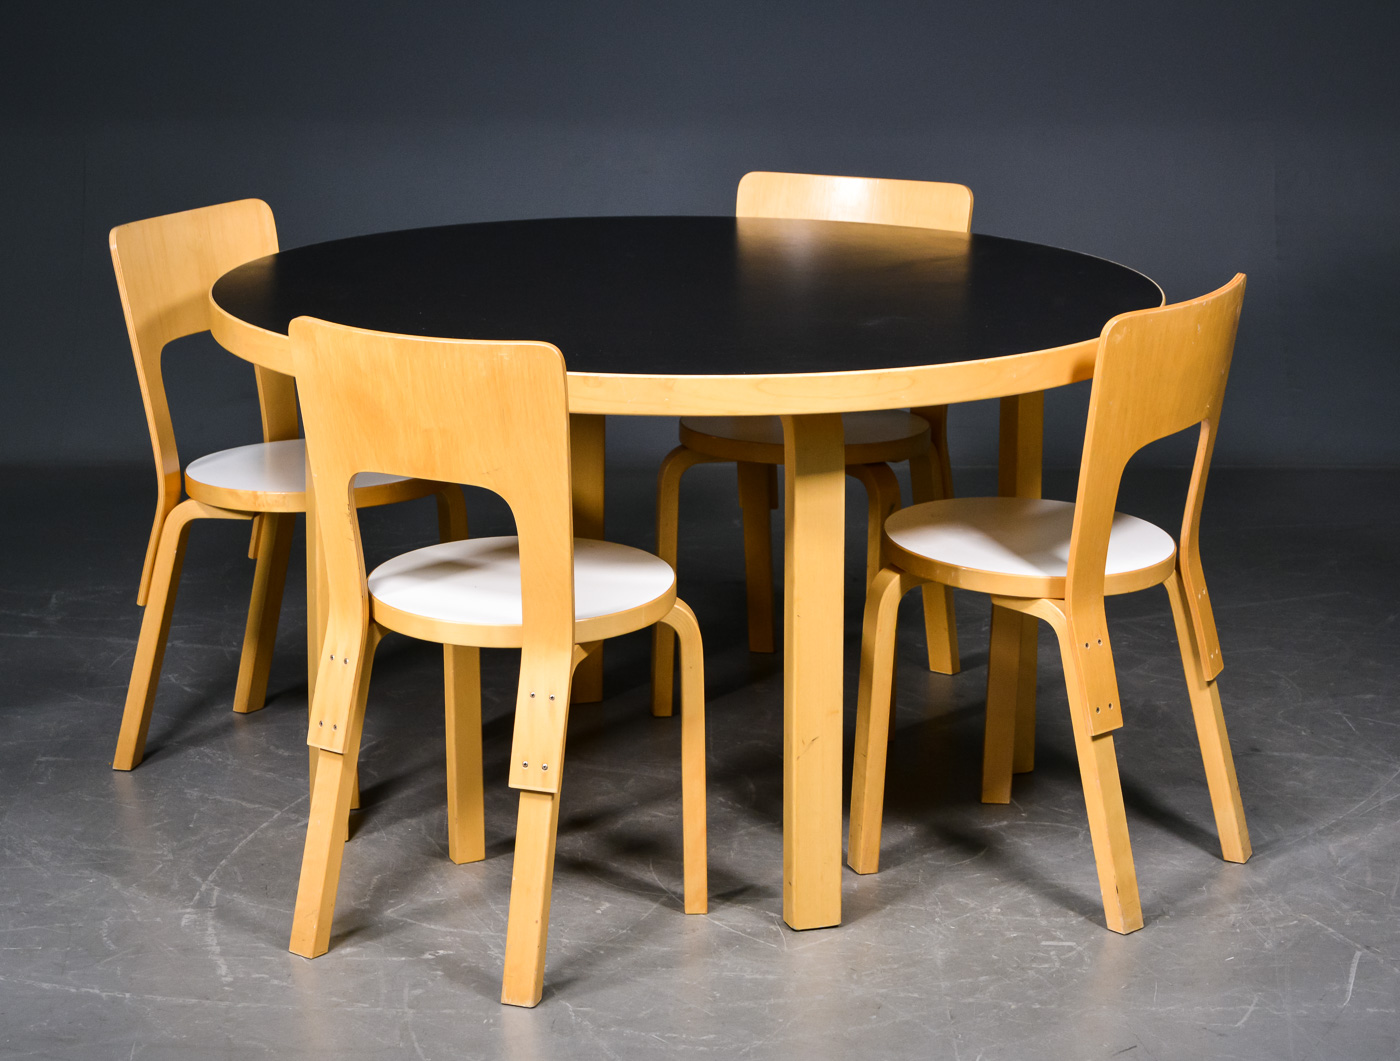 Alvar Aalto. A round table with four chairs (5)